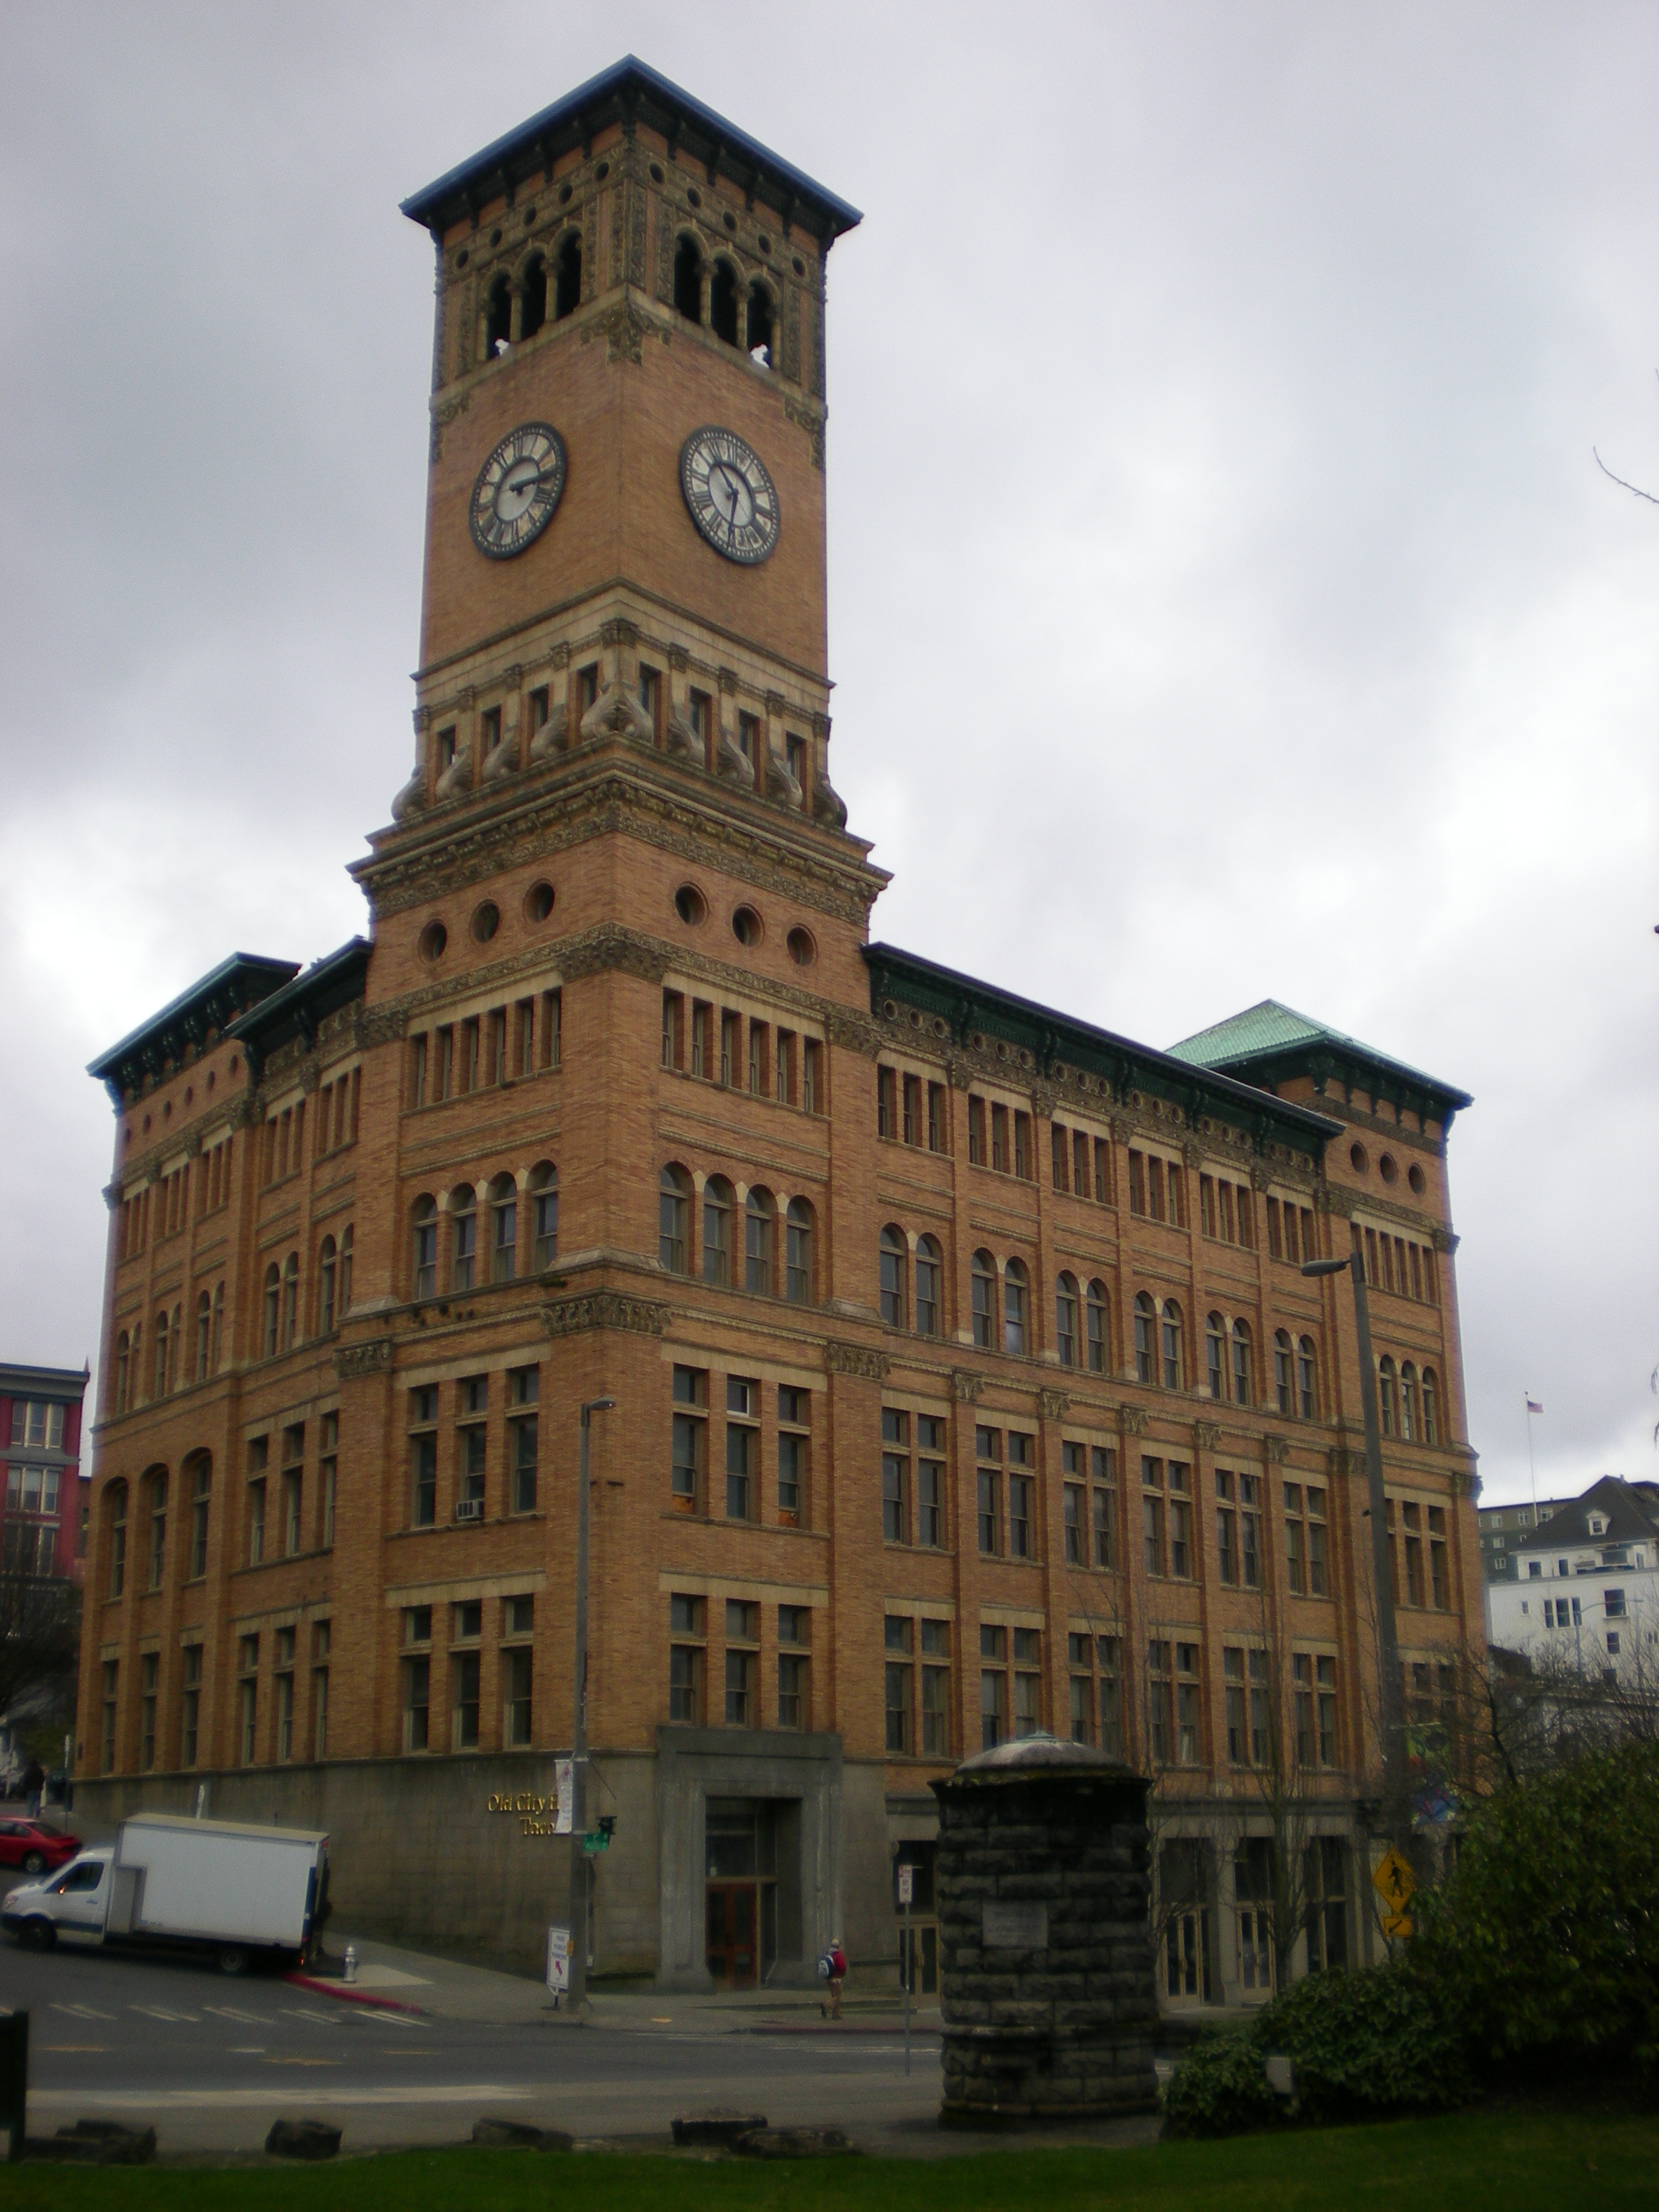 Tacoma's Old City Hall, with its prominent clock and bell tower